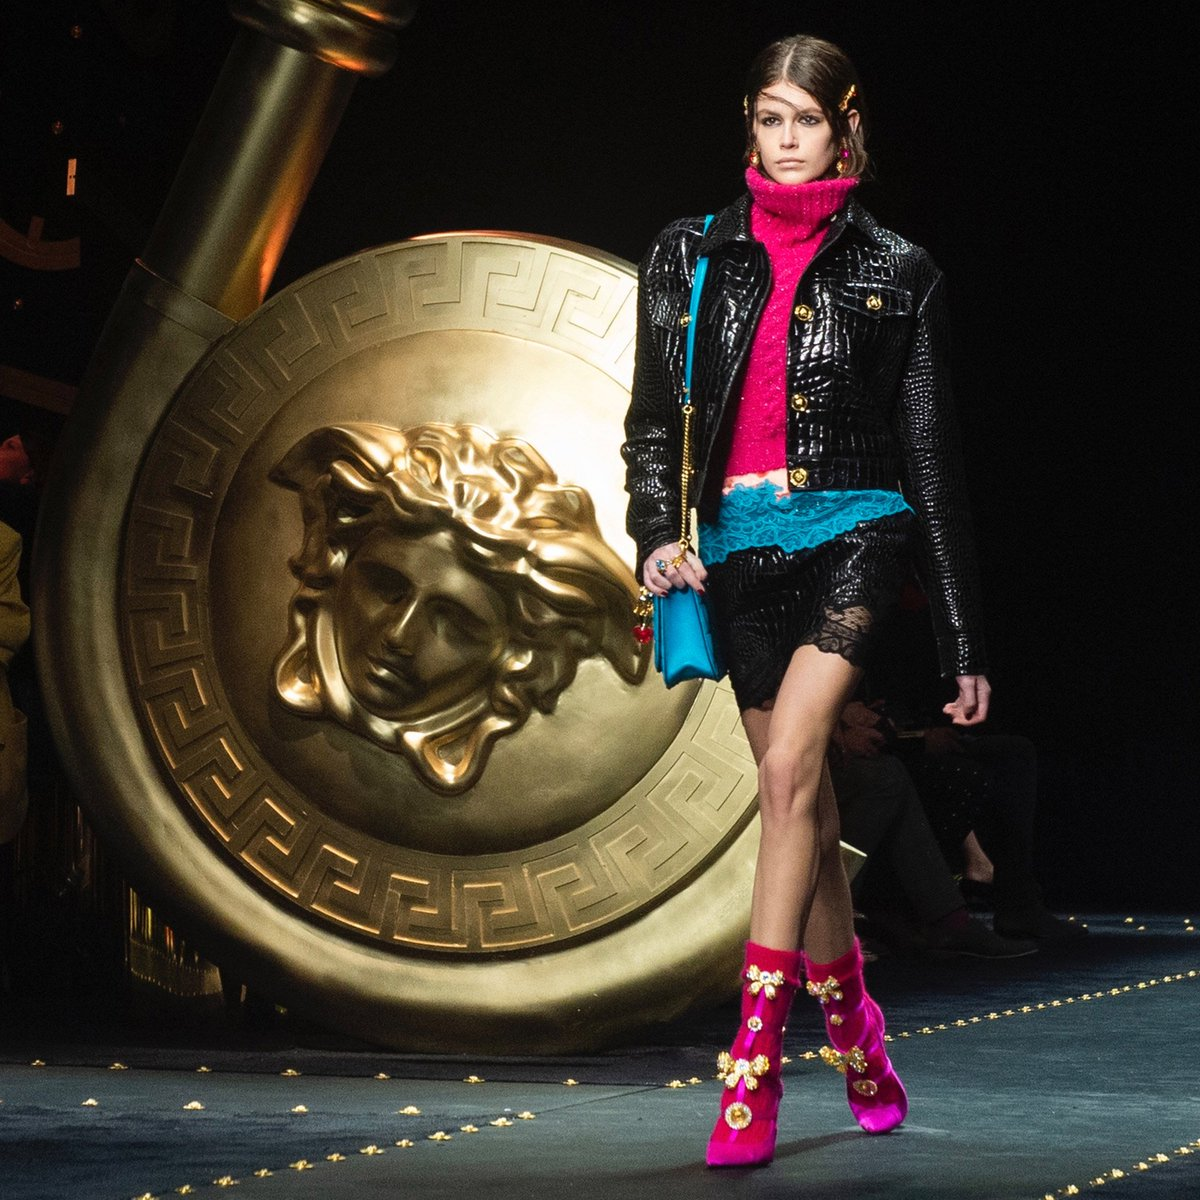 #KaiaGerber in a mock croc quilted leather jacket and skirt paired with bright knits and contrast color lace trims on the #VersaceFW19 runway. #MFW  Watch the show:  https://t.co/drIKwcSbJe